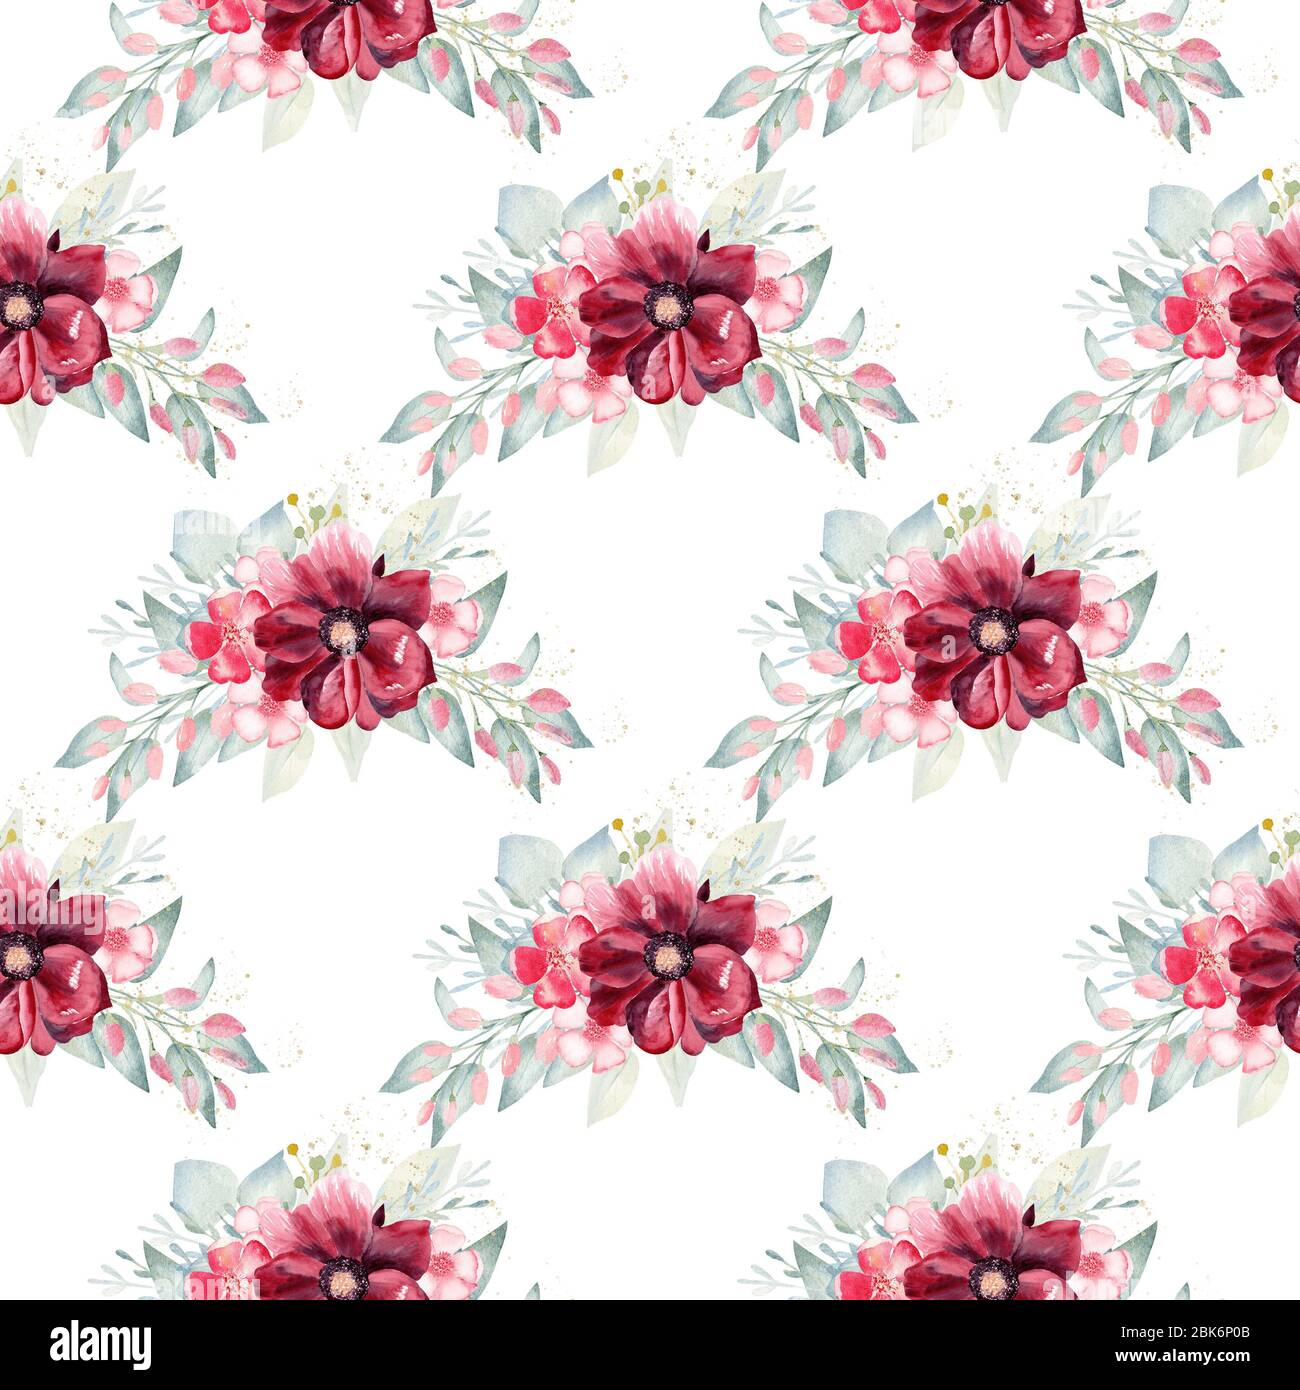 Floral Bouquet Seamless Pattern Watercolor Clipart Burgundy Flowers And Greenery Illustration Handmade Art For Background Wallpaper Invitation We Stock Photo Alamy